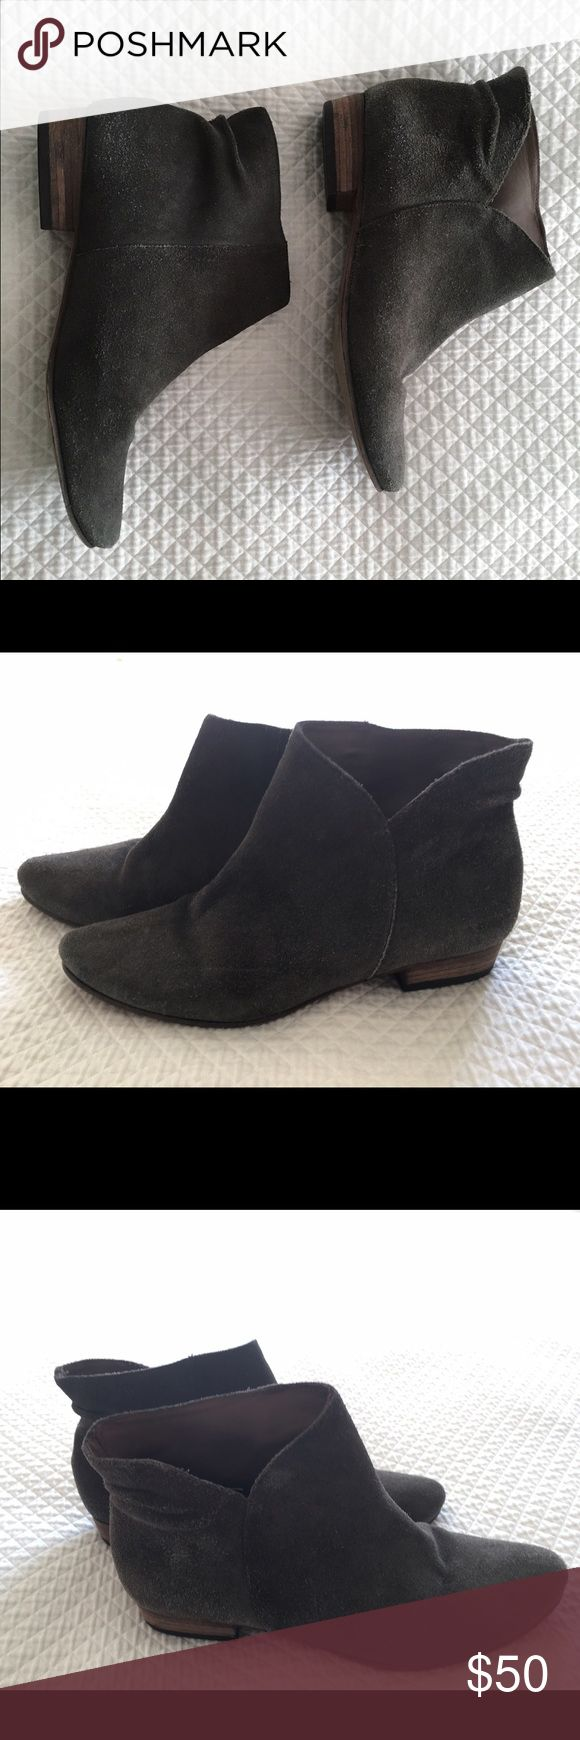 Joie booties Super cute suede booties. The distressing you see it's part of the original design. Very comfortable. Joie Shoes Ankle Boots & Booties